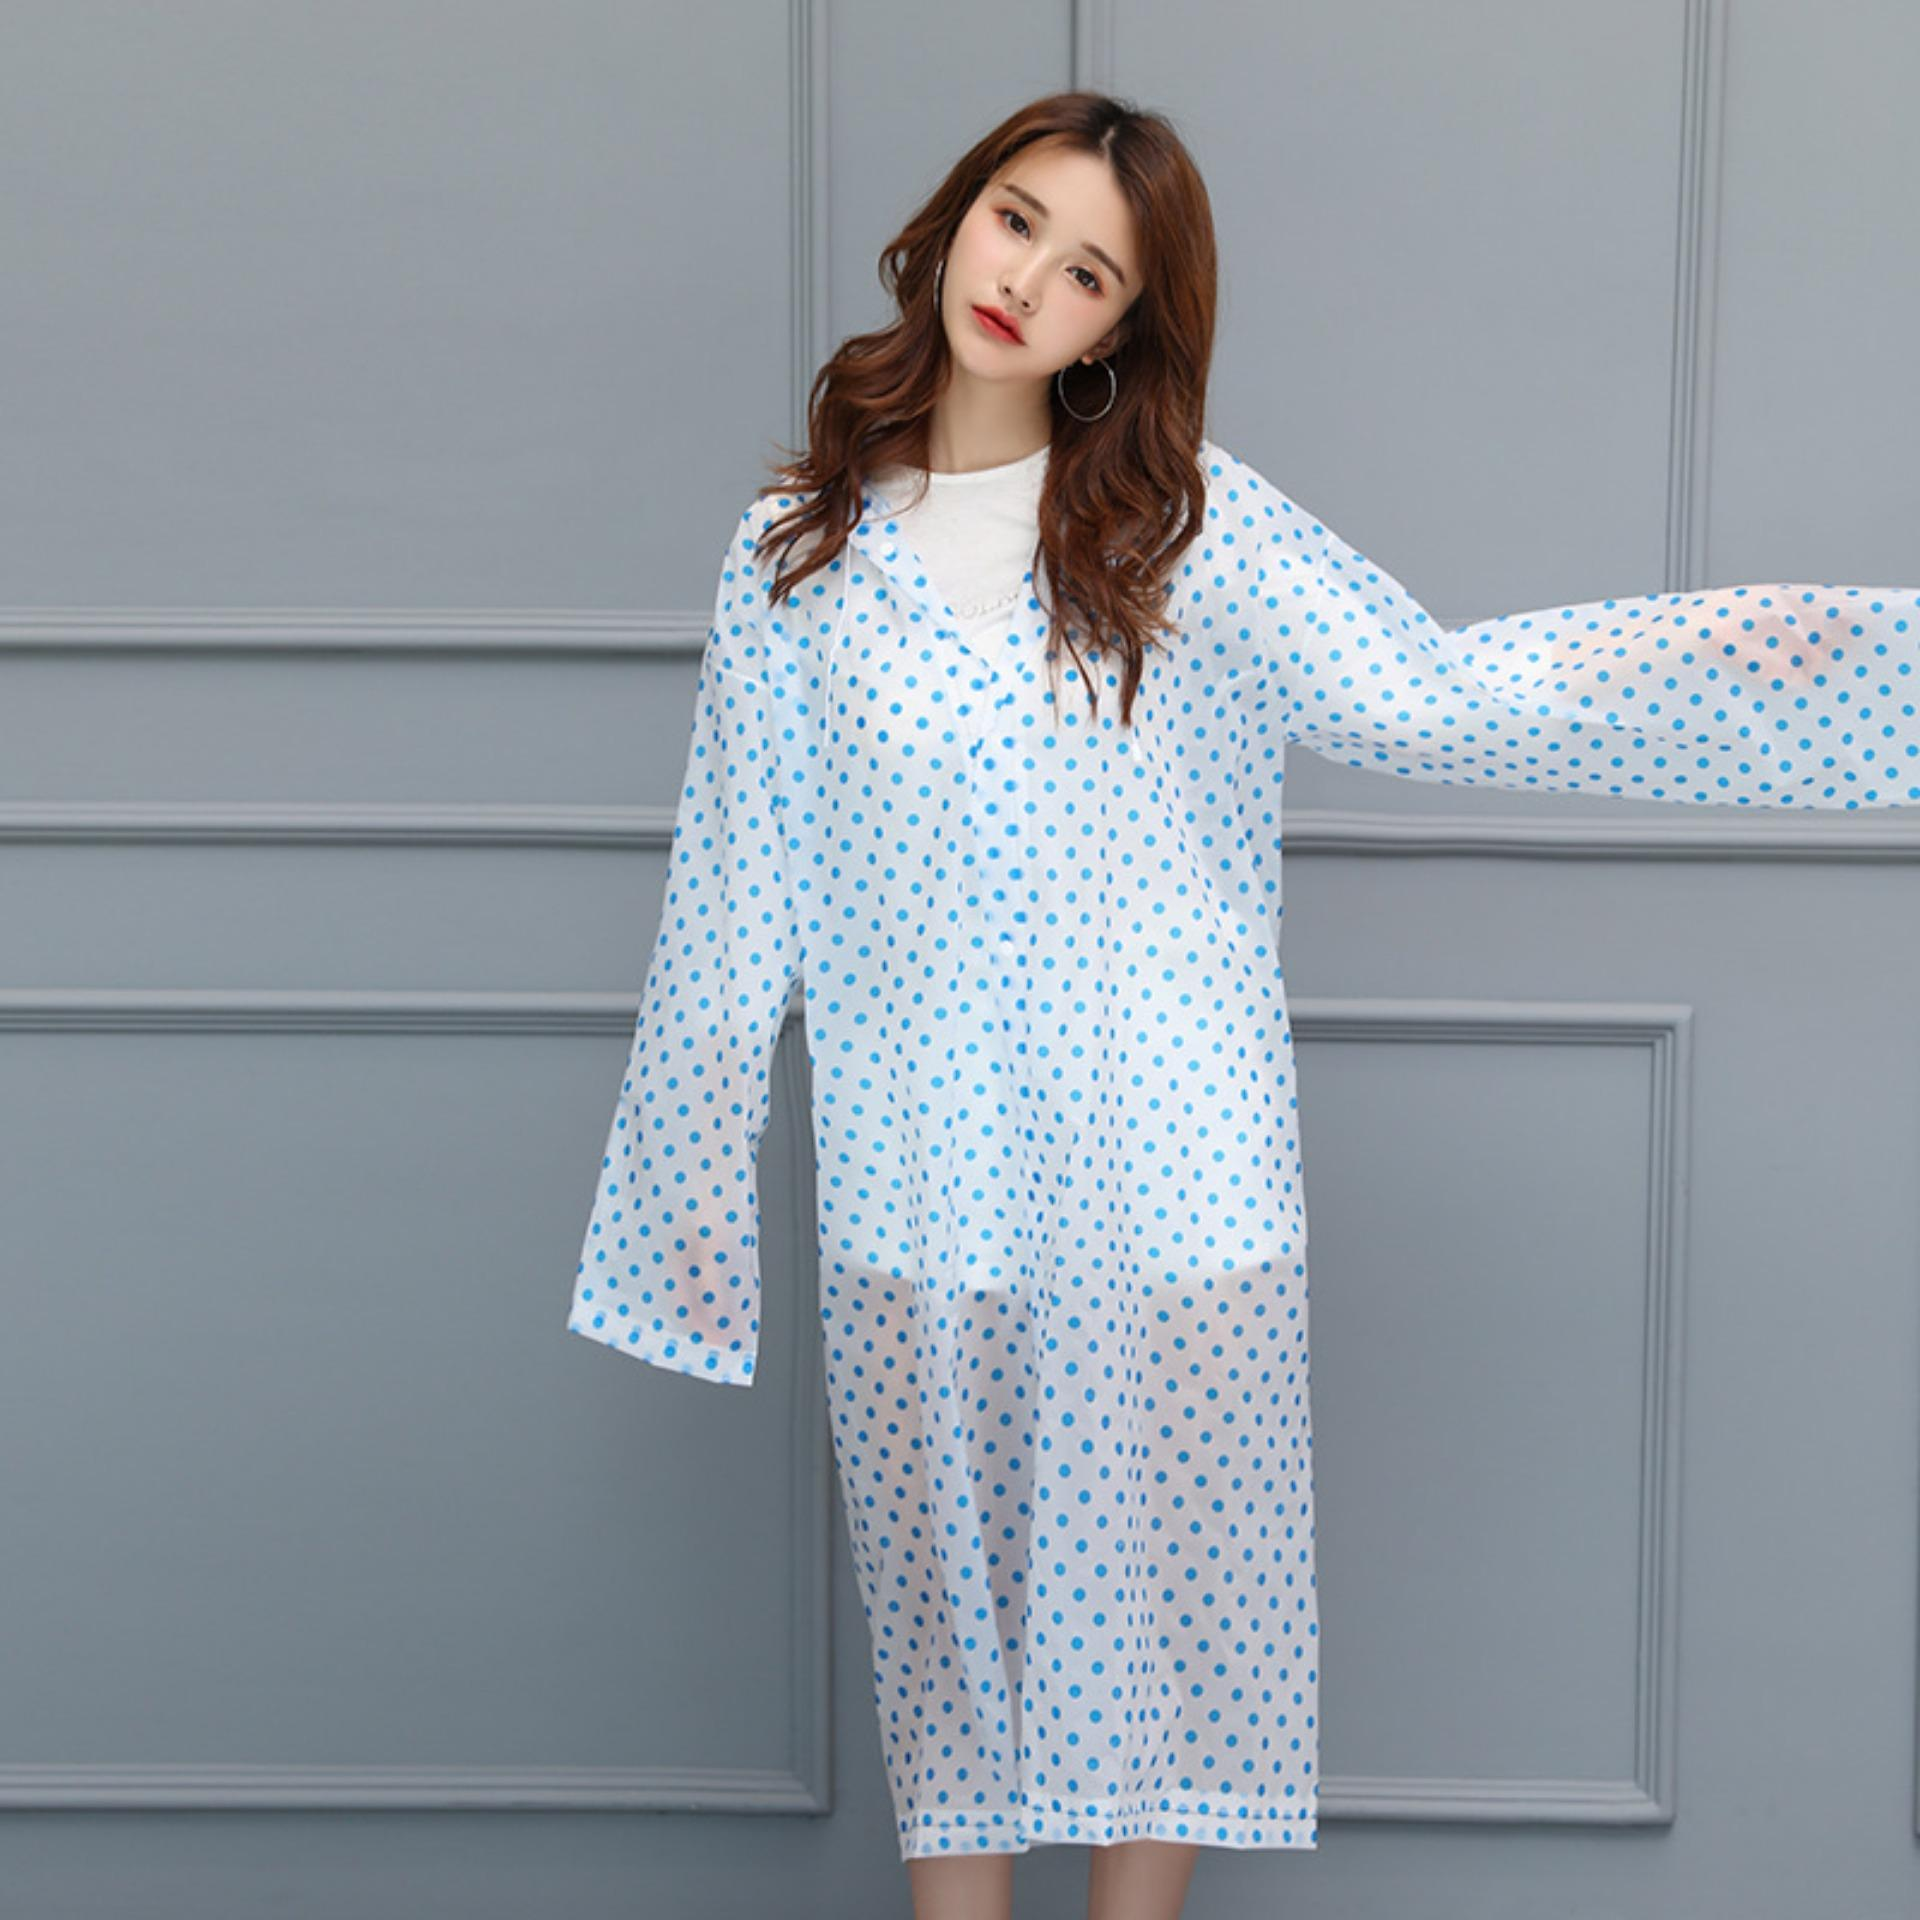 Jas Hujan Korean Style Murah Ponco Ceria Tipe Polka Dot Raincoat By Life & Beauty.